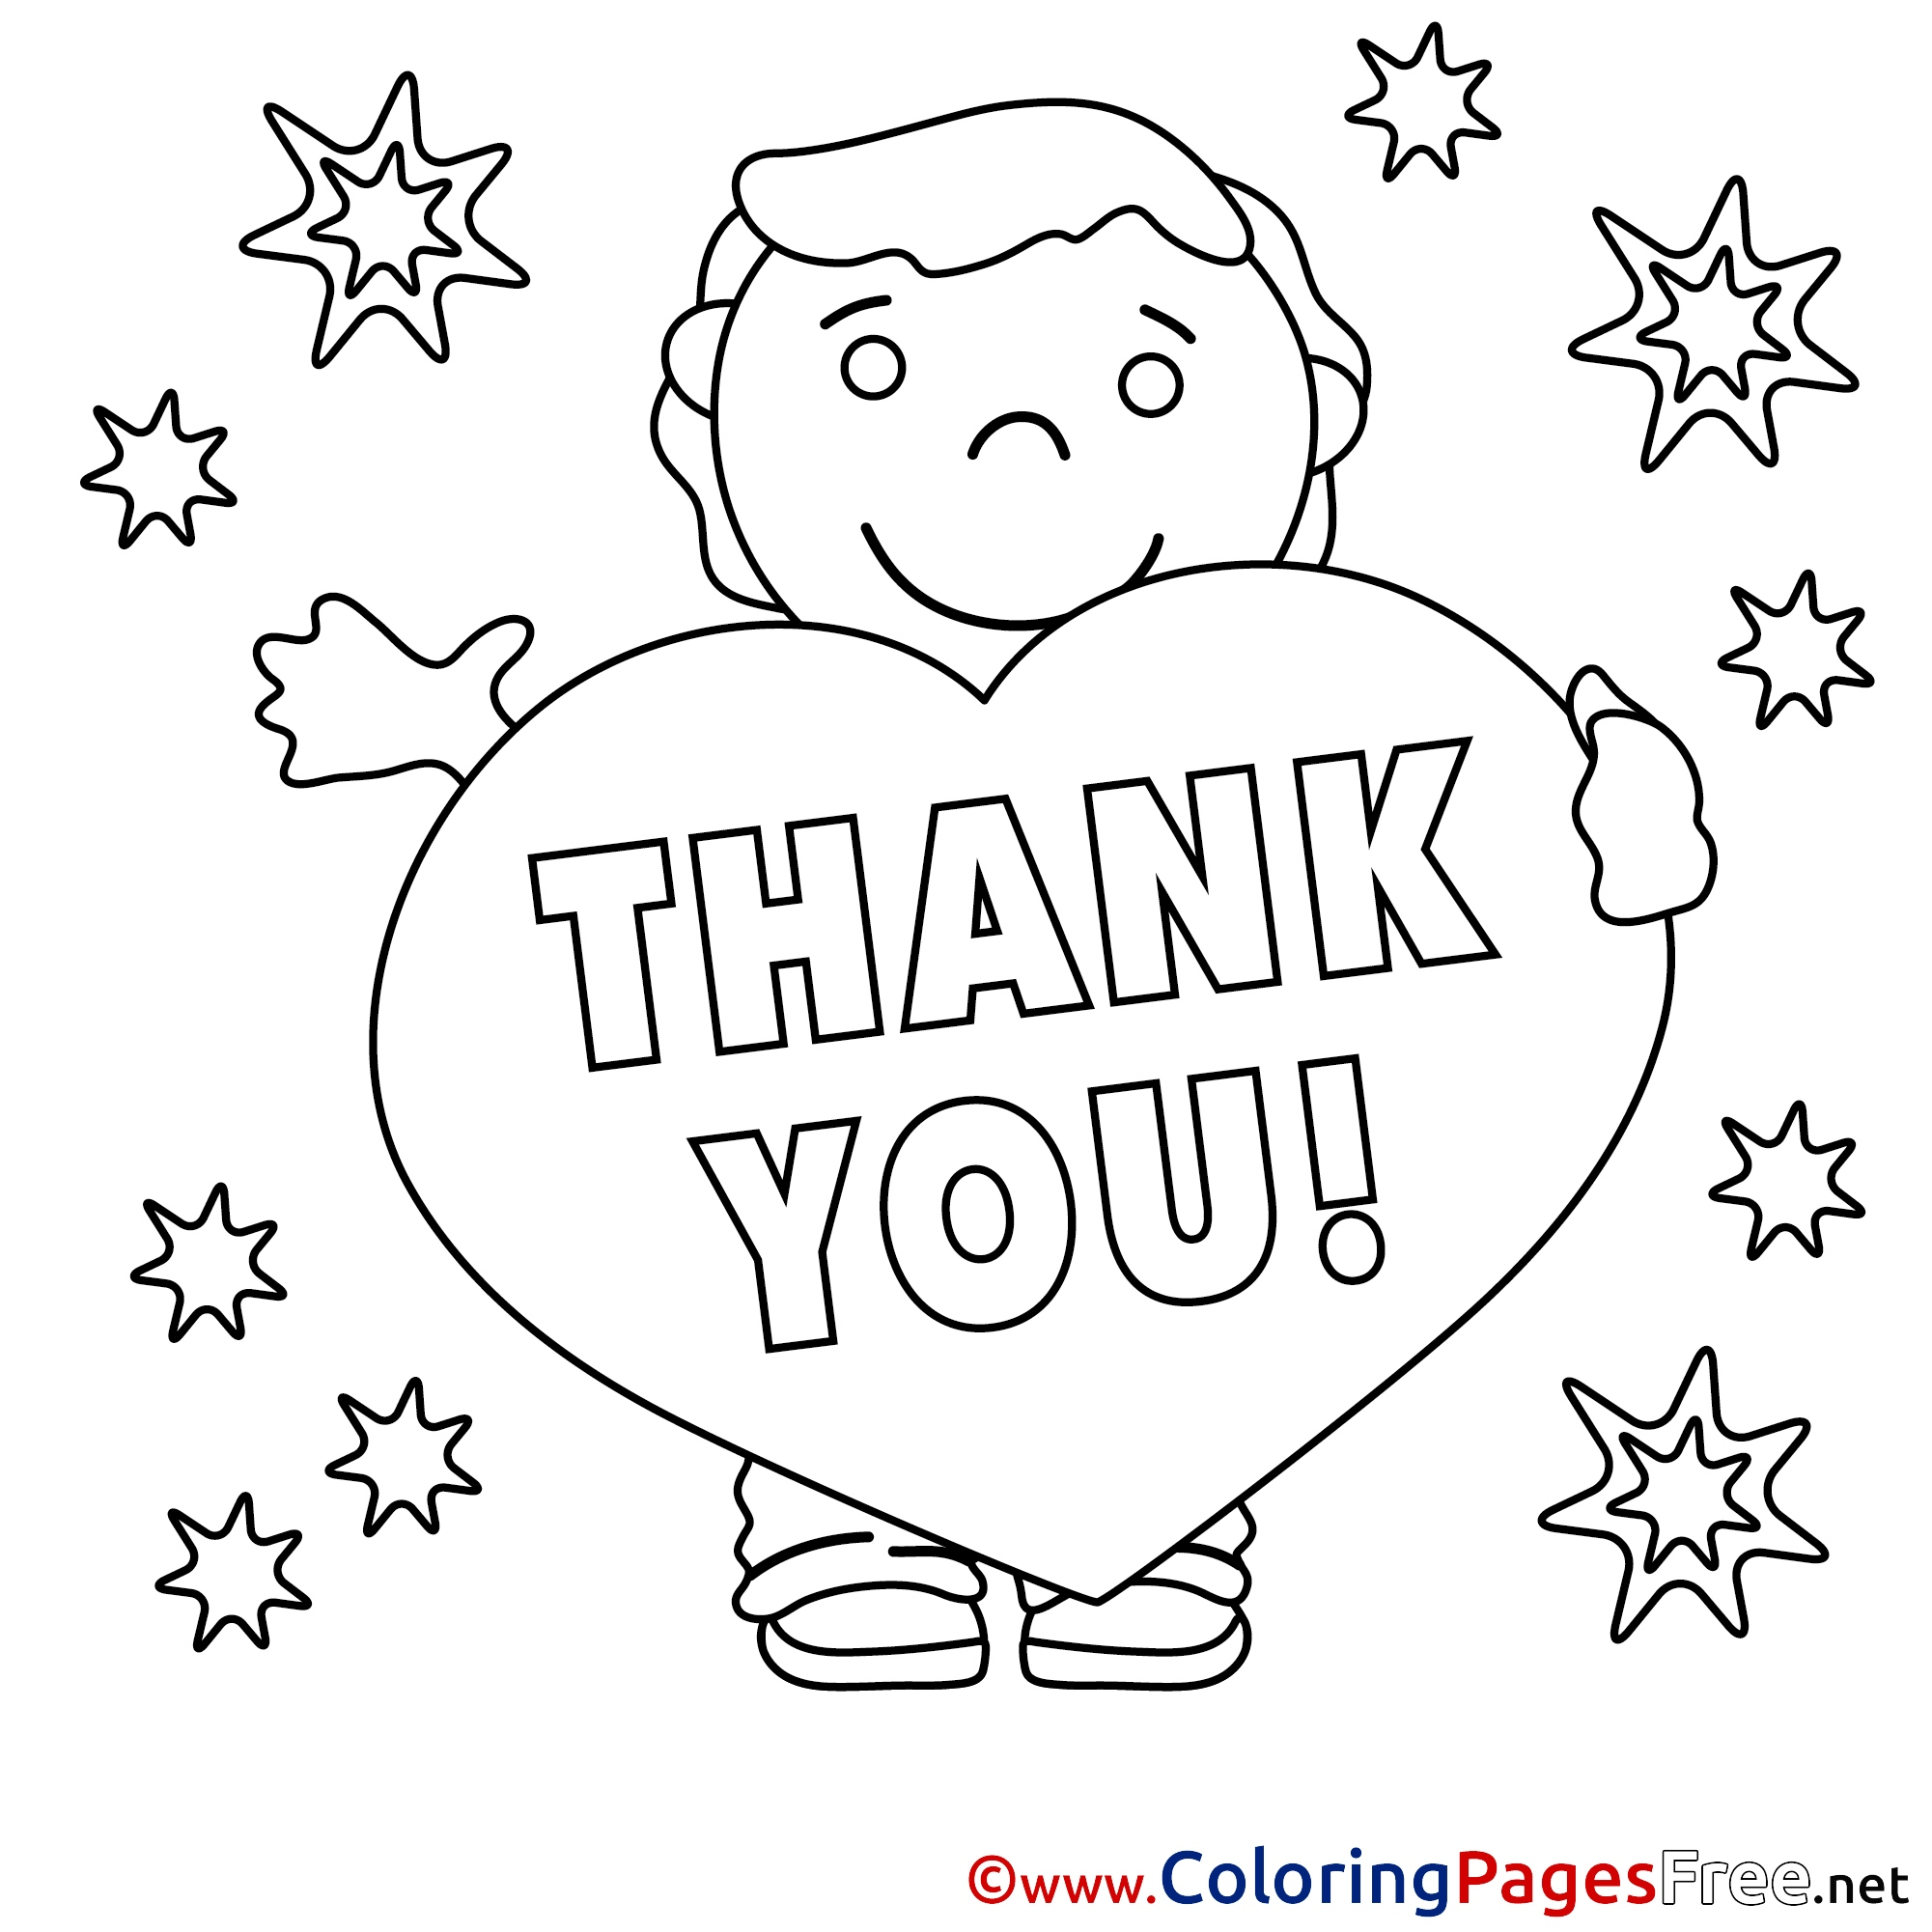 2001x2001 Thank You Coloring Pages Beautiful Thank You Coloring Pages Free